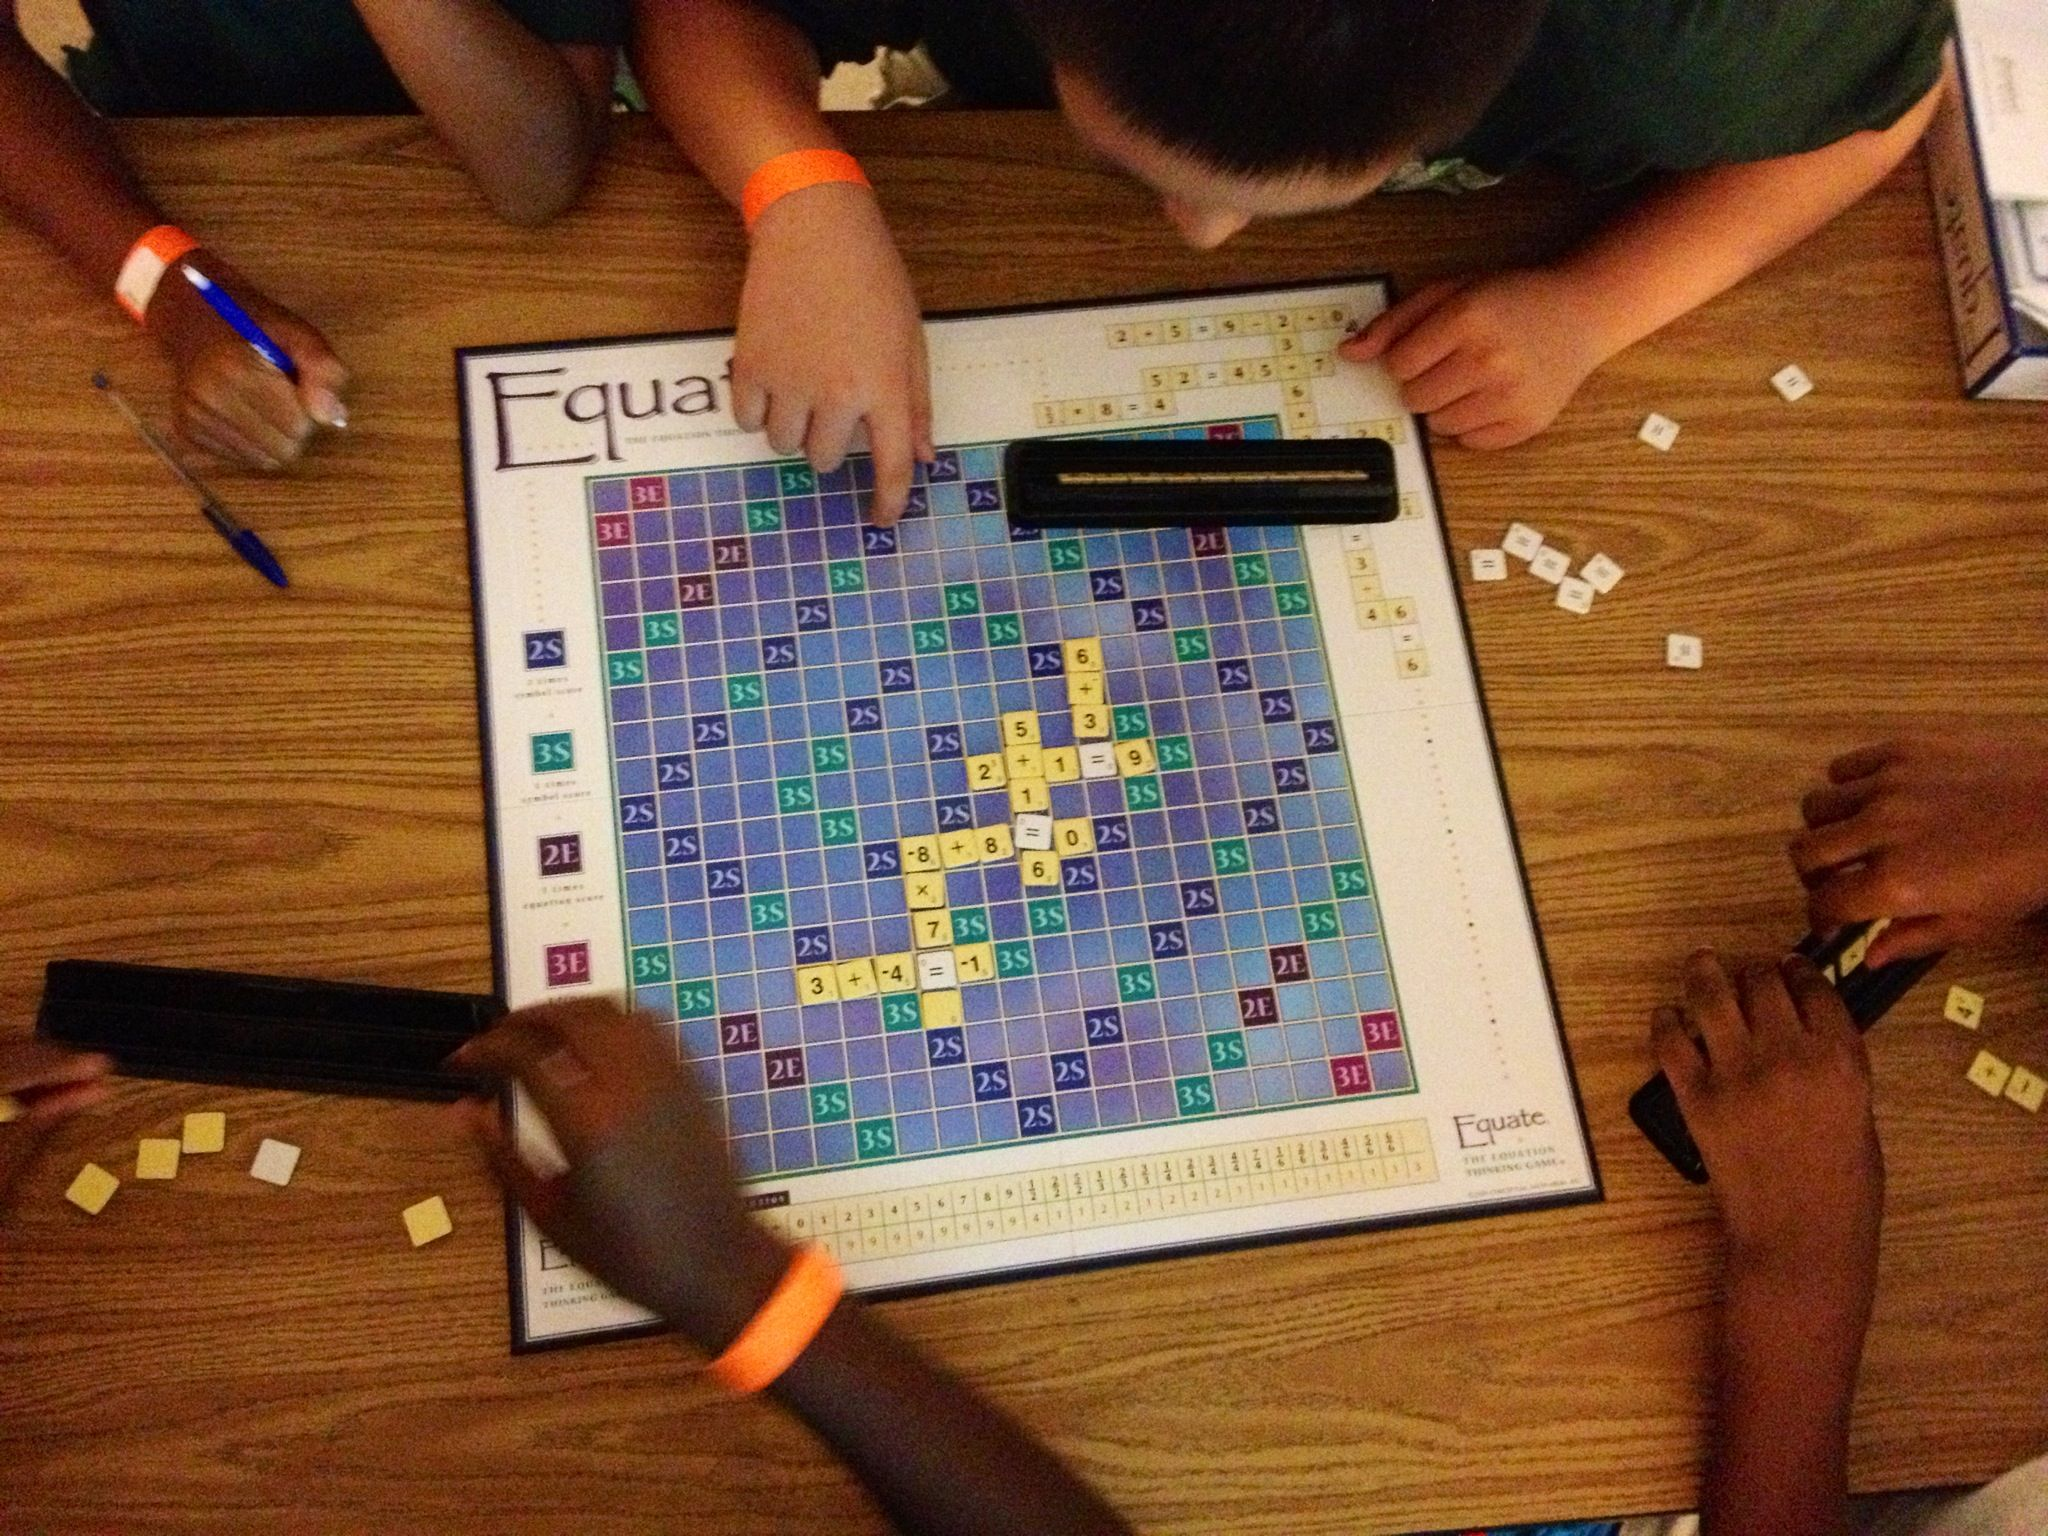 Educational Board Games Like Equate Create A Fun Way To